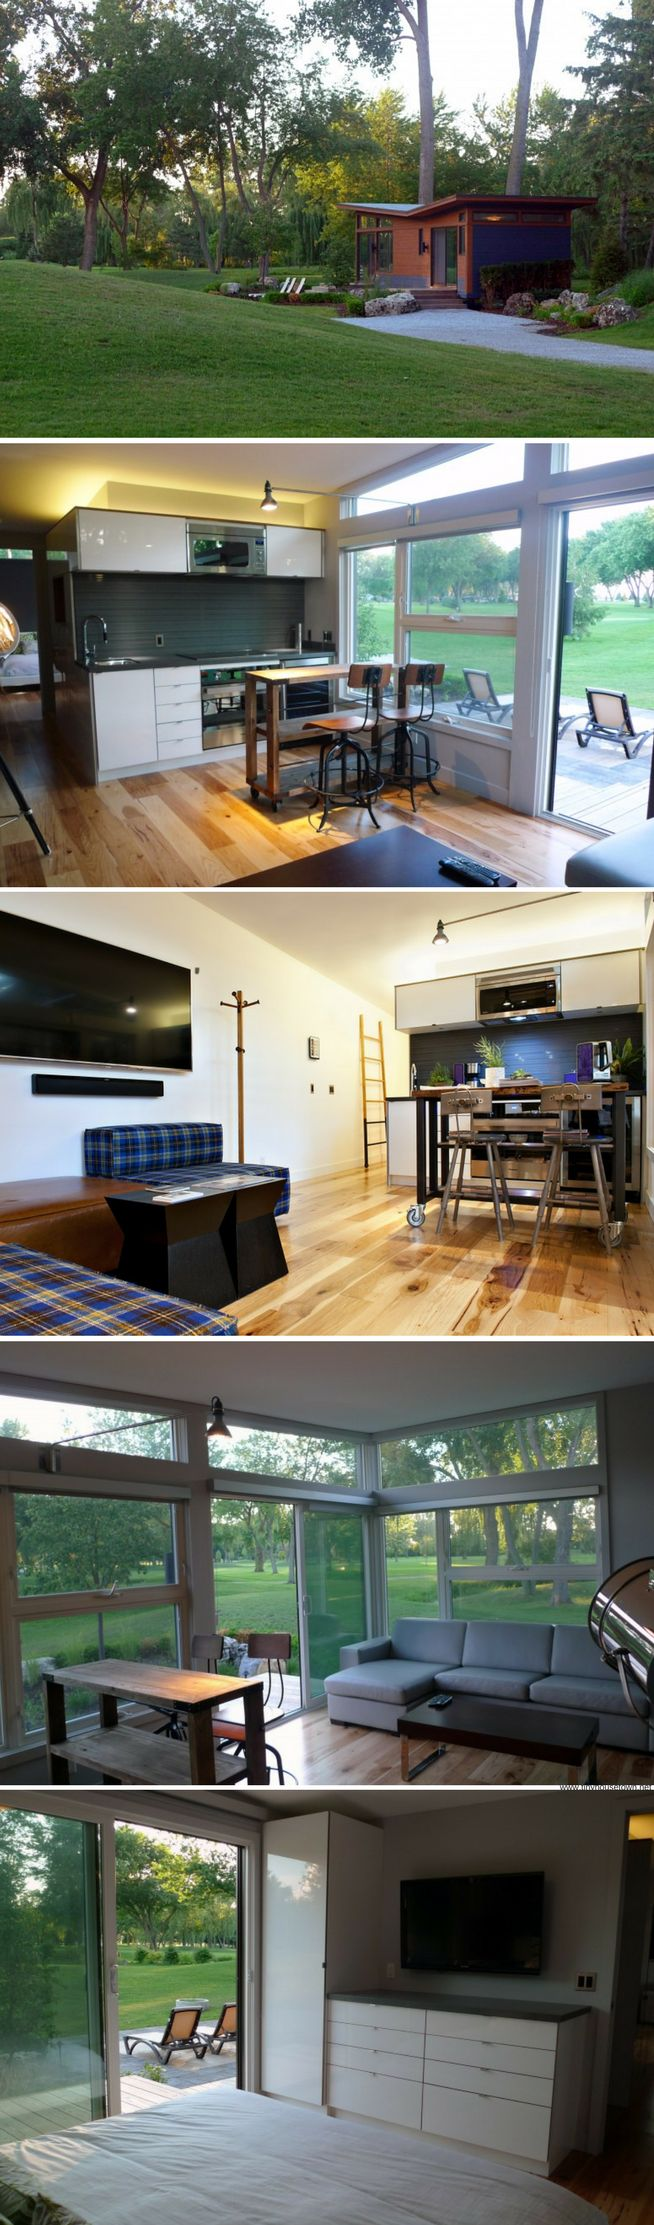 best 25 prefab modular homes ideas on pinterest tiny modular the solo 40 a prefab modular home